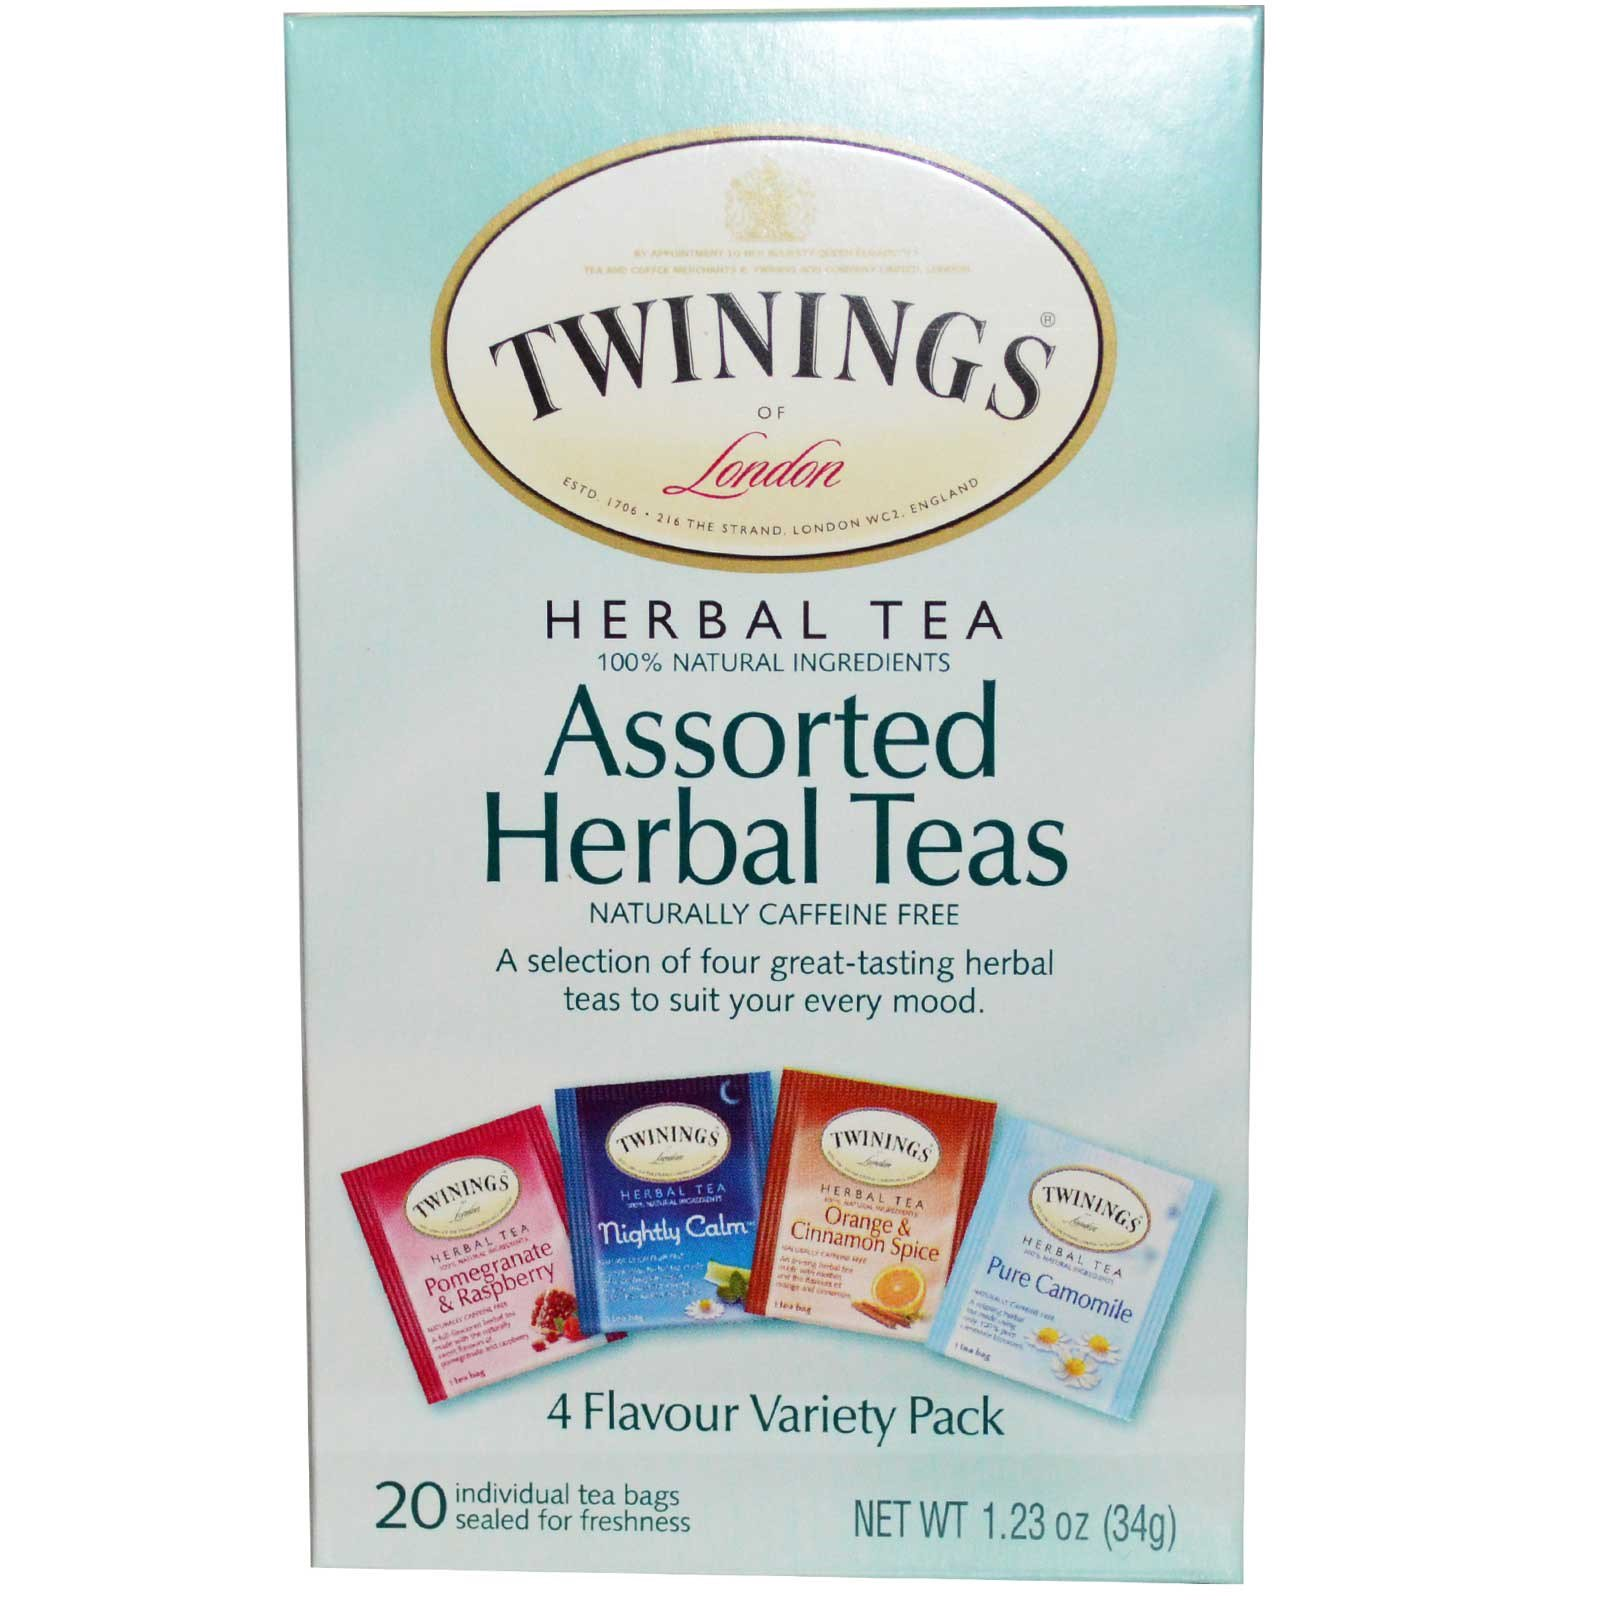 Twinings Assorted Herbal Teas